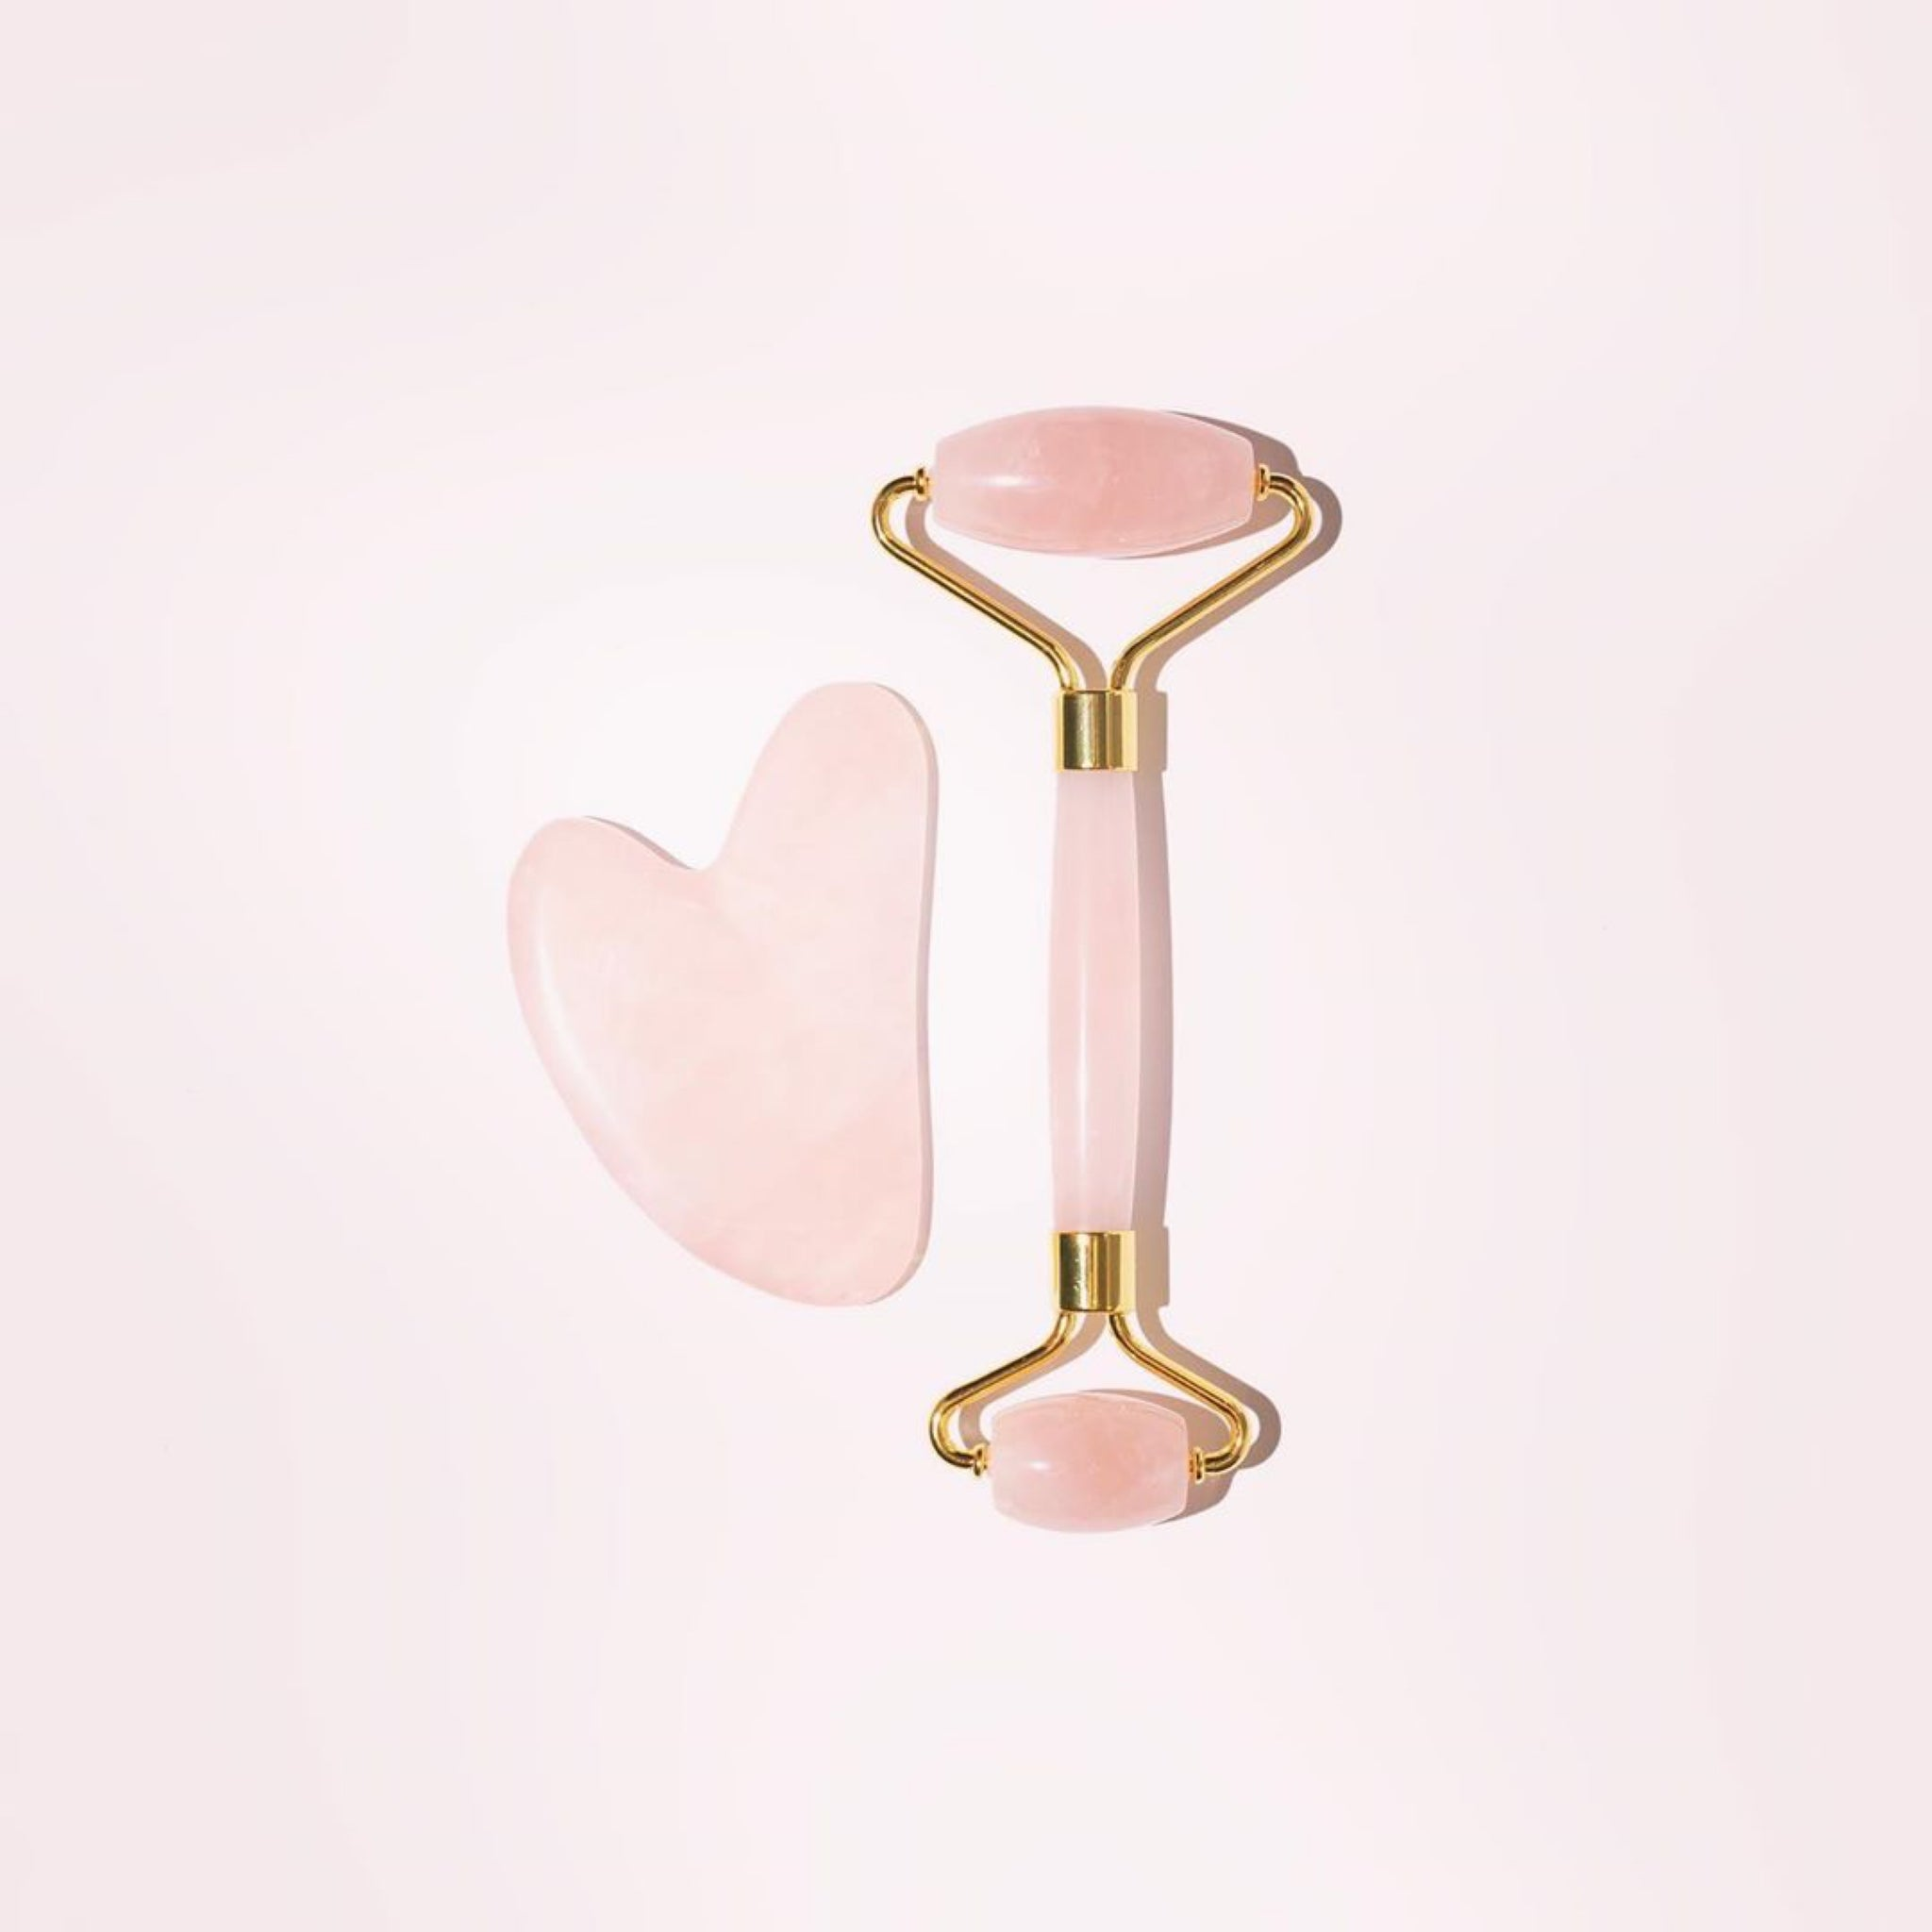 Zove Beauty - Rose Quartz Roller